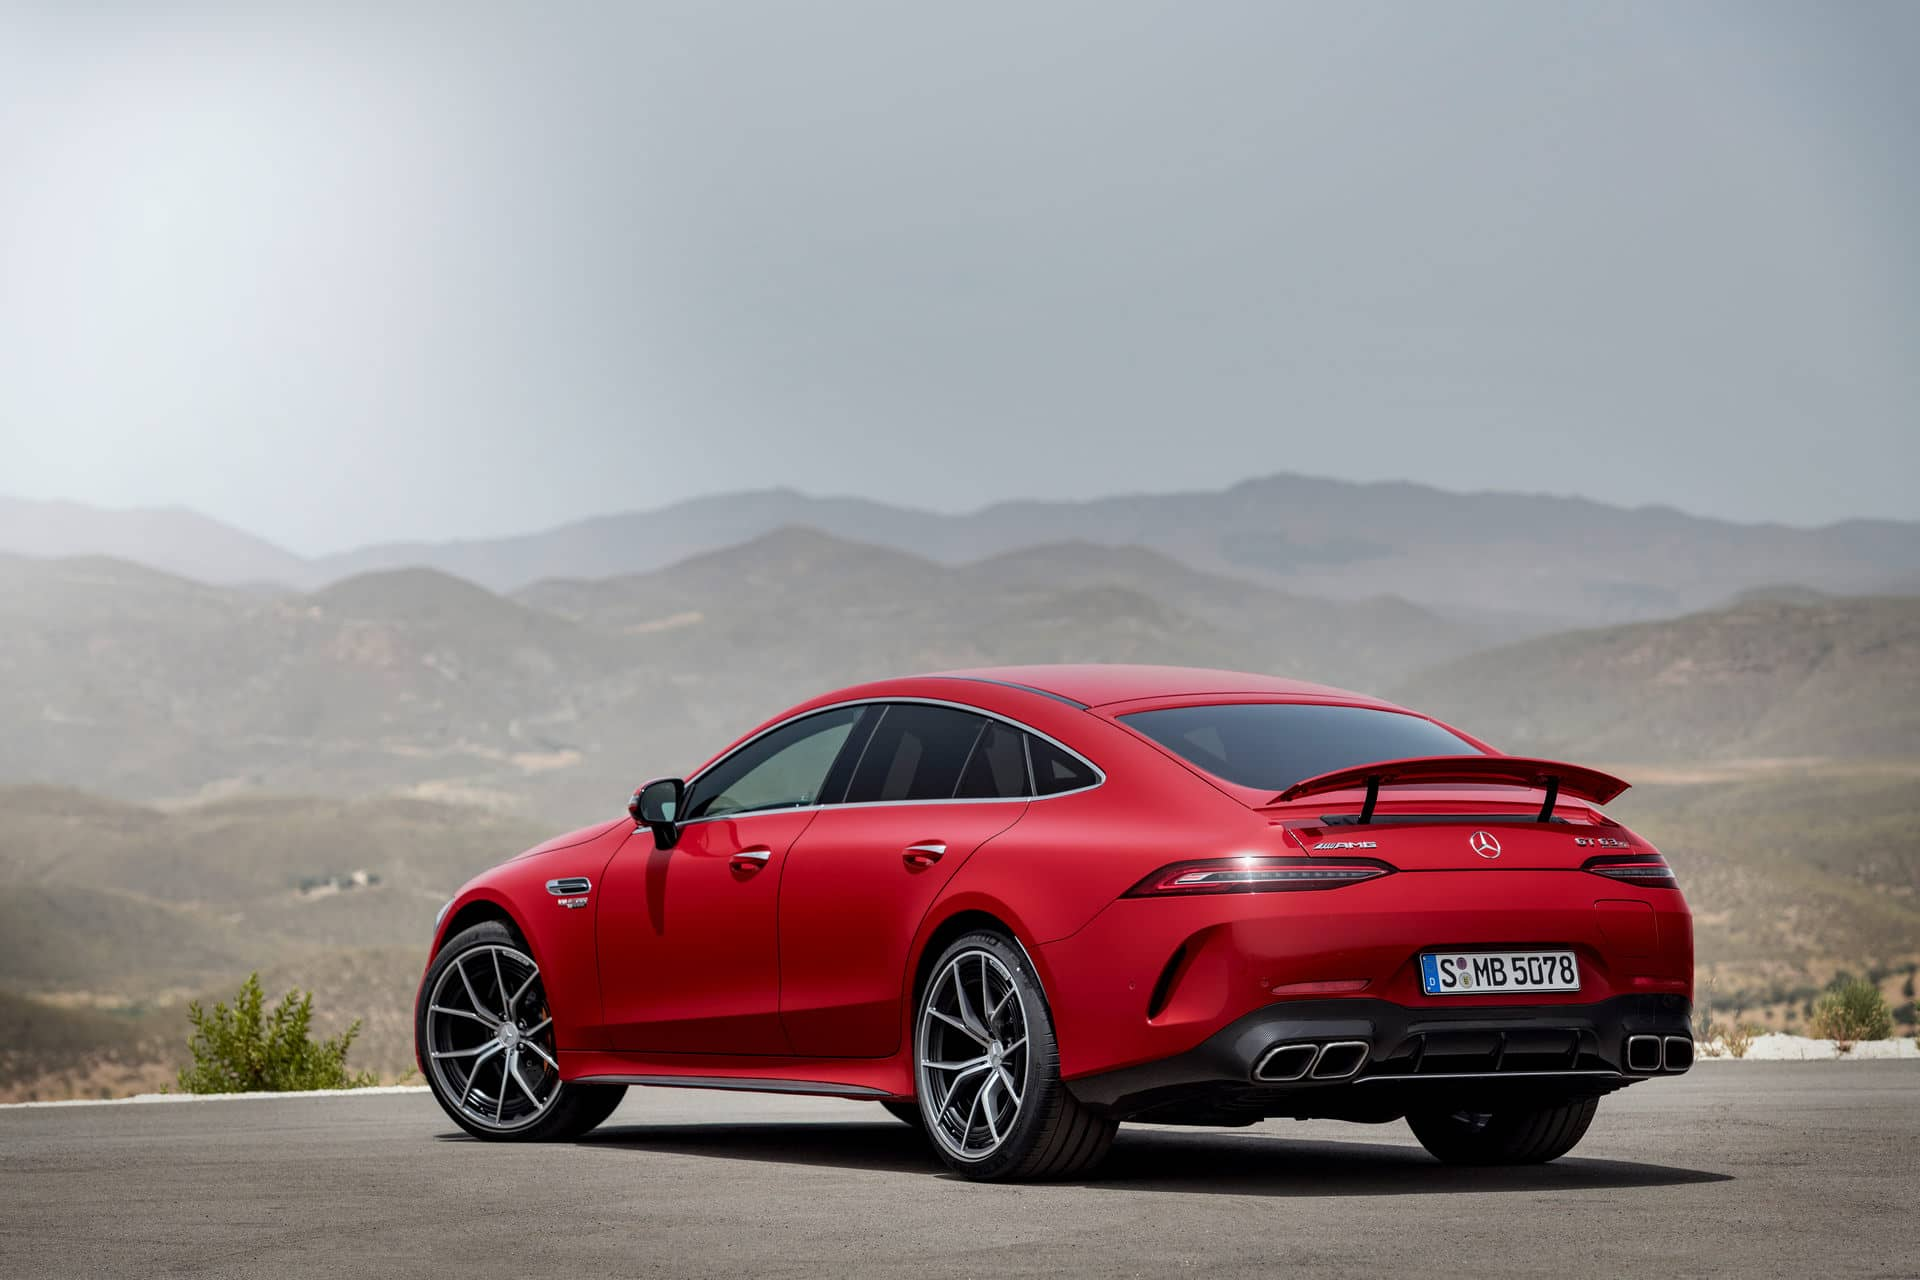 mercedes-amg gt 63 s eperformance (16)